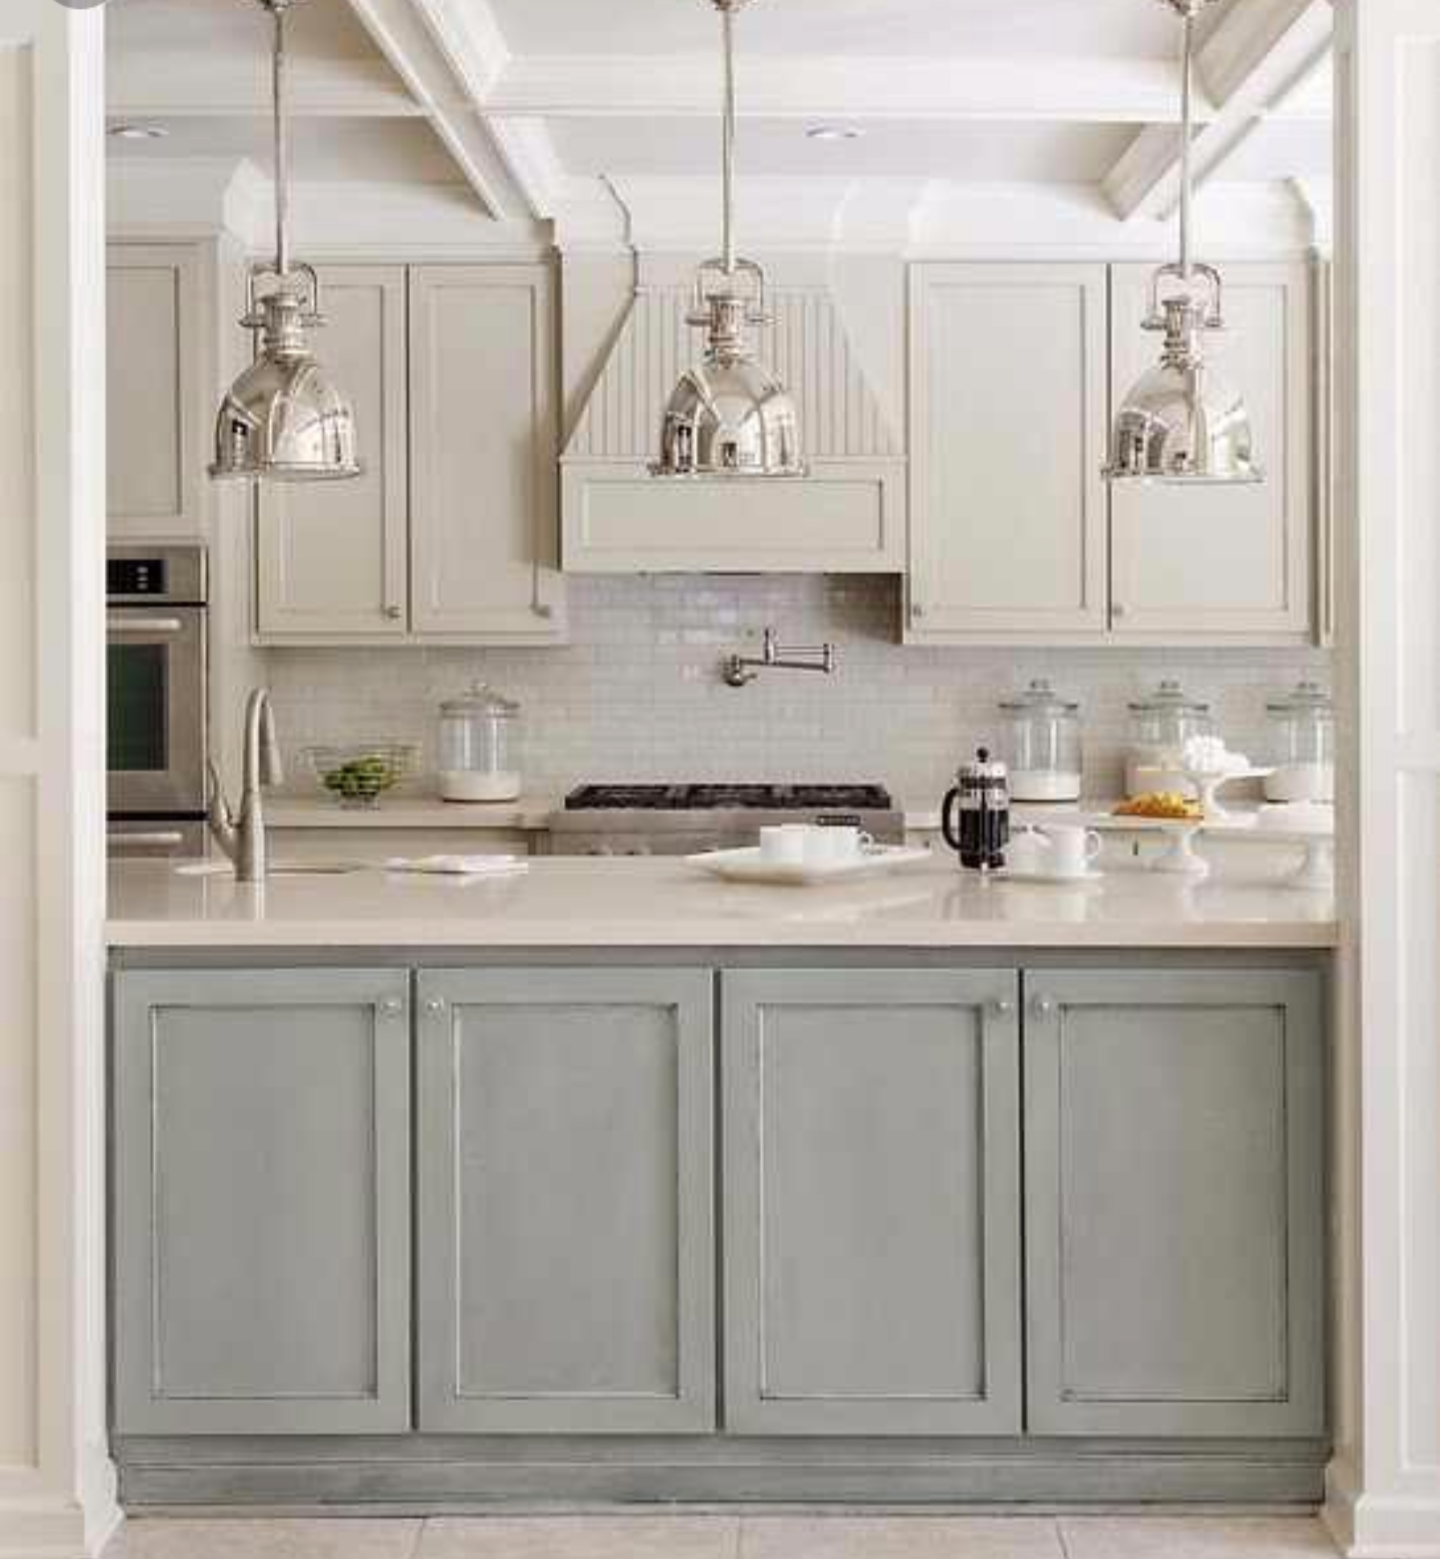 Cabinet Refinishing Centennial Co Archives Cabinets Refinishing And Cabinet Painting Denver